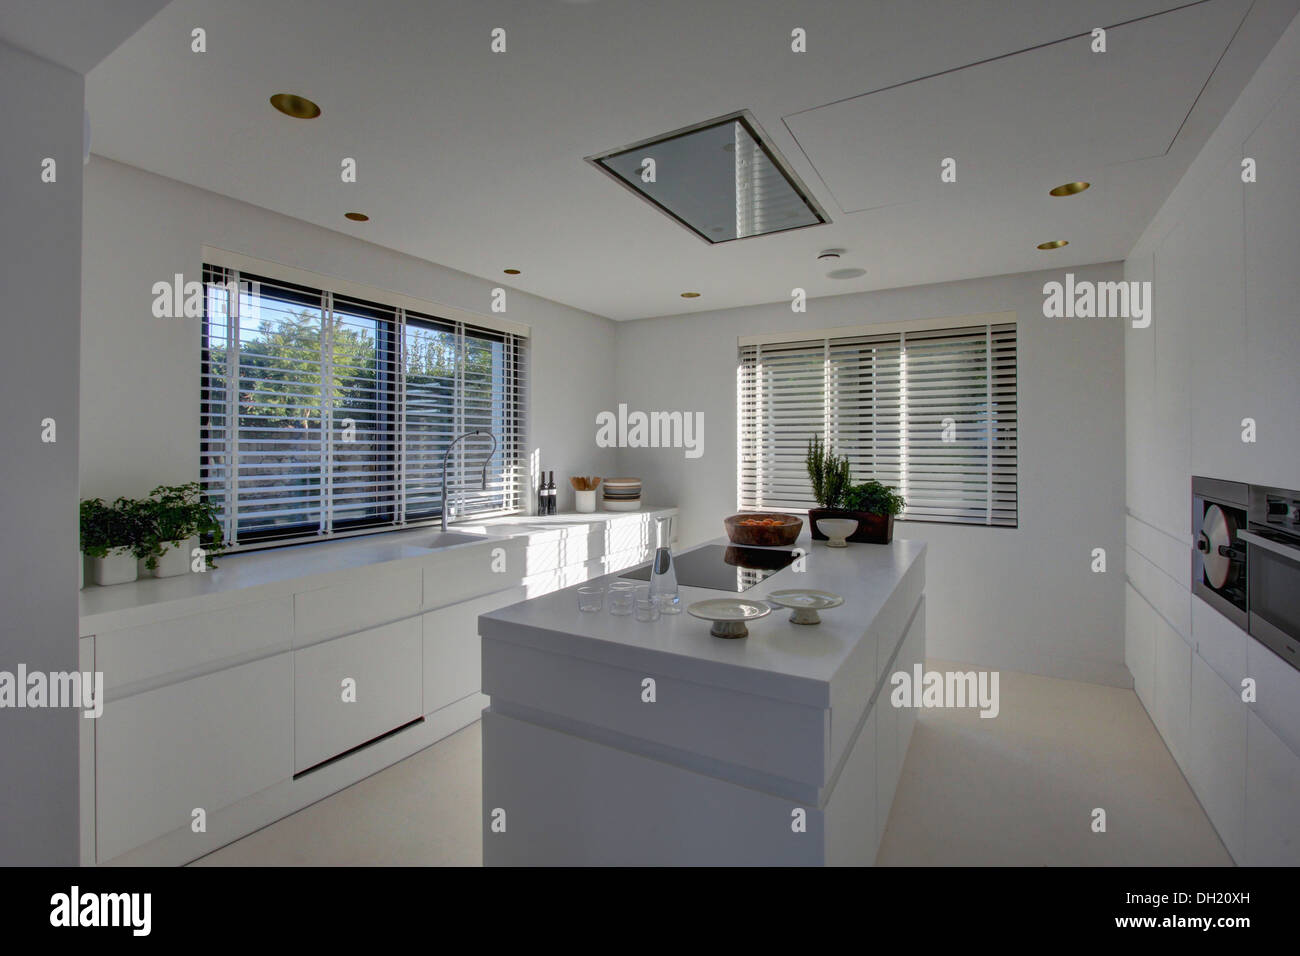 grey kitchen blinds skinny cabinet island unit in modern white with venetian on the windows